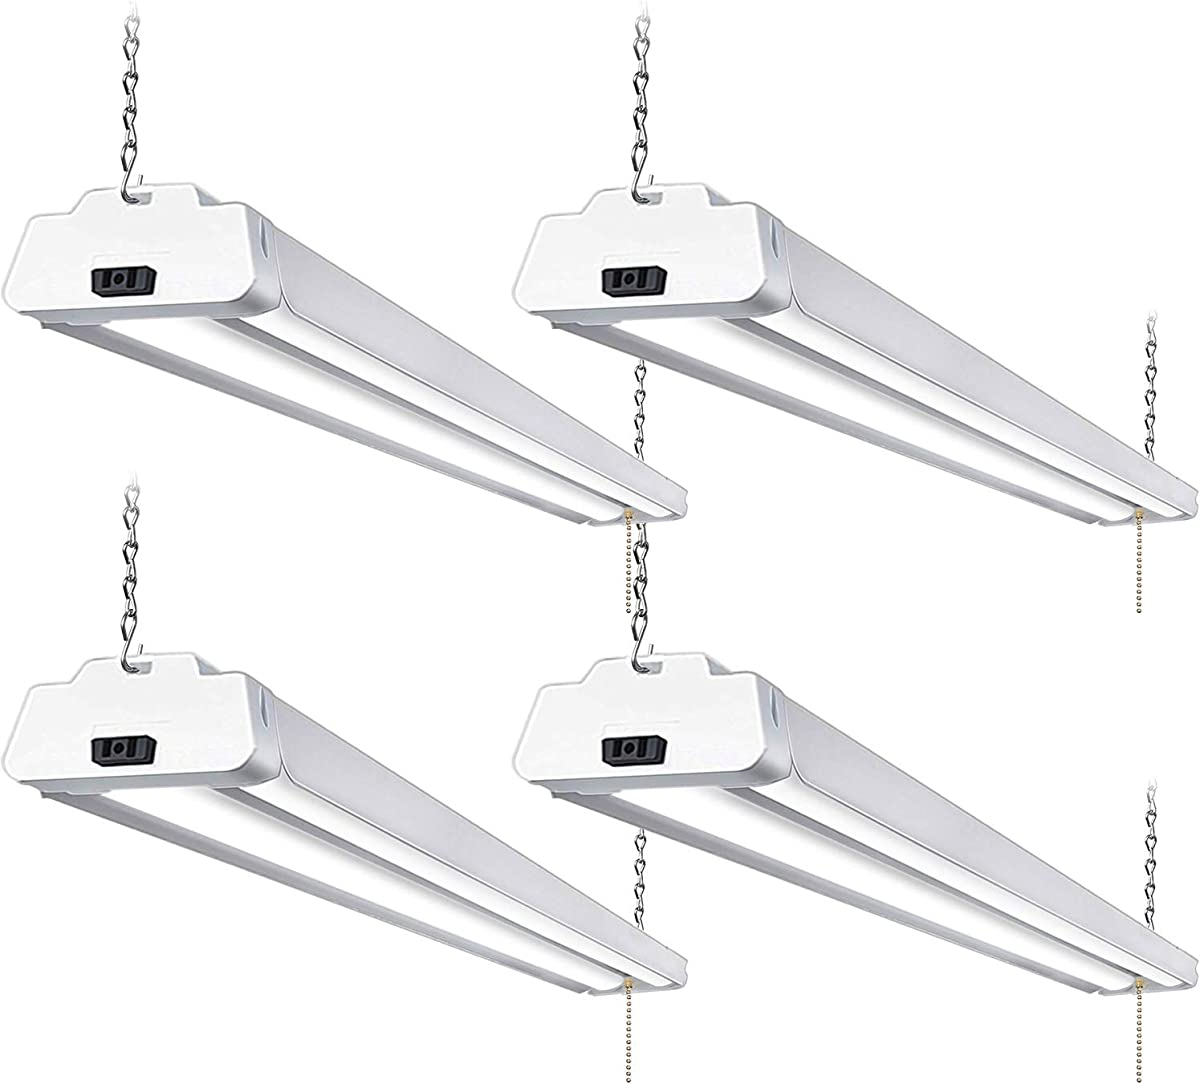 Topnotch garage linkable LED Shop Light